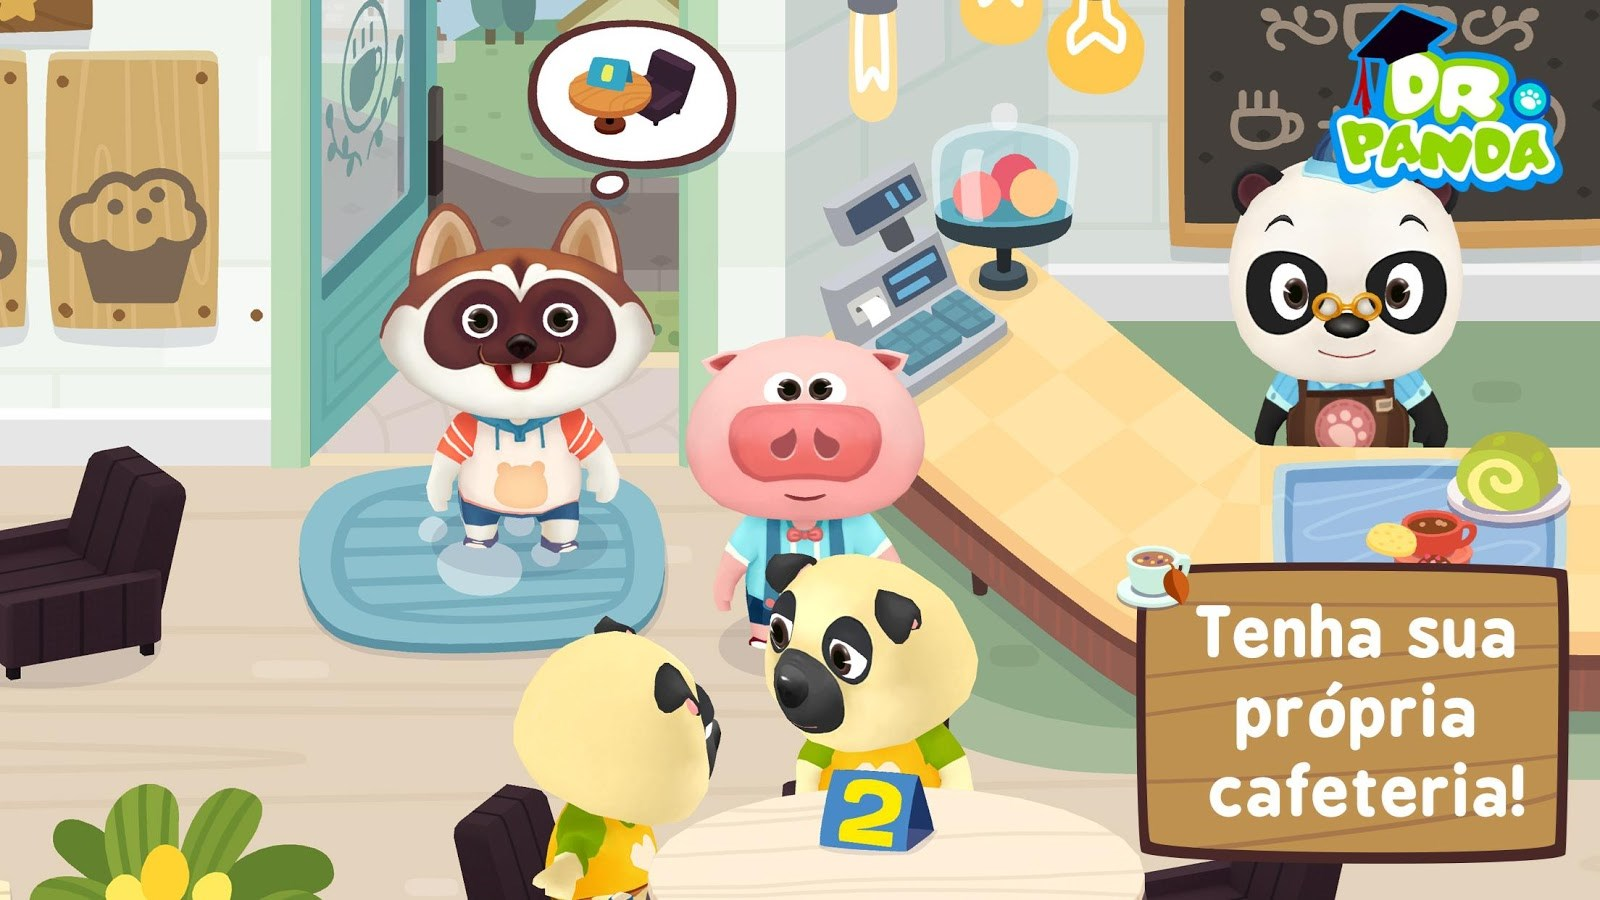 Dr. Panda Café Freemium - Imagem 1 do software